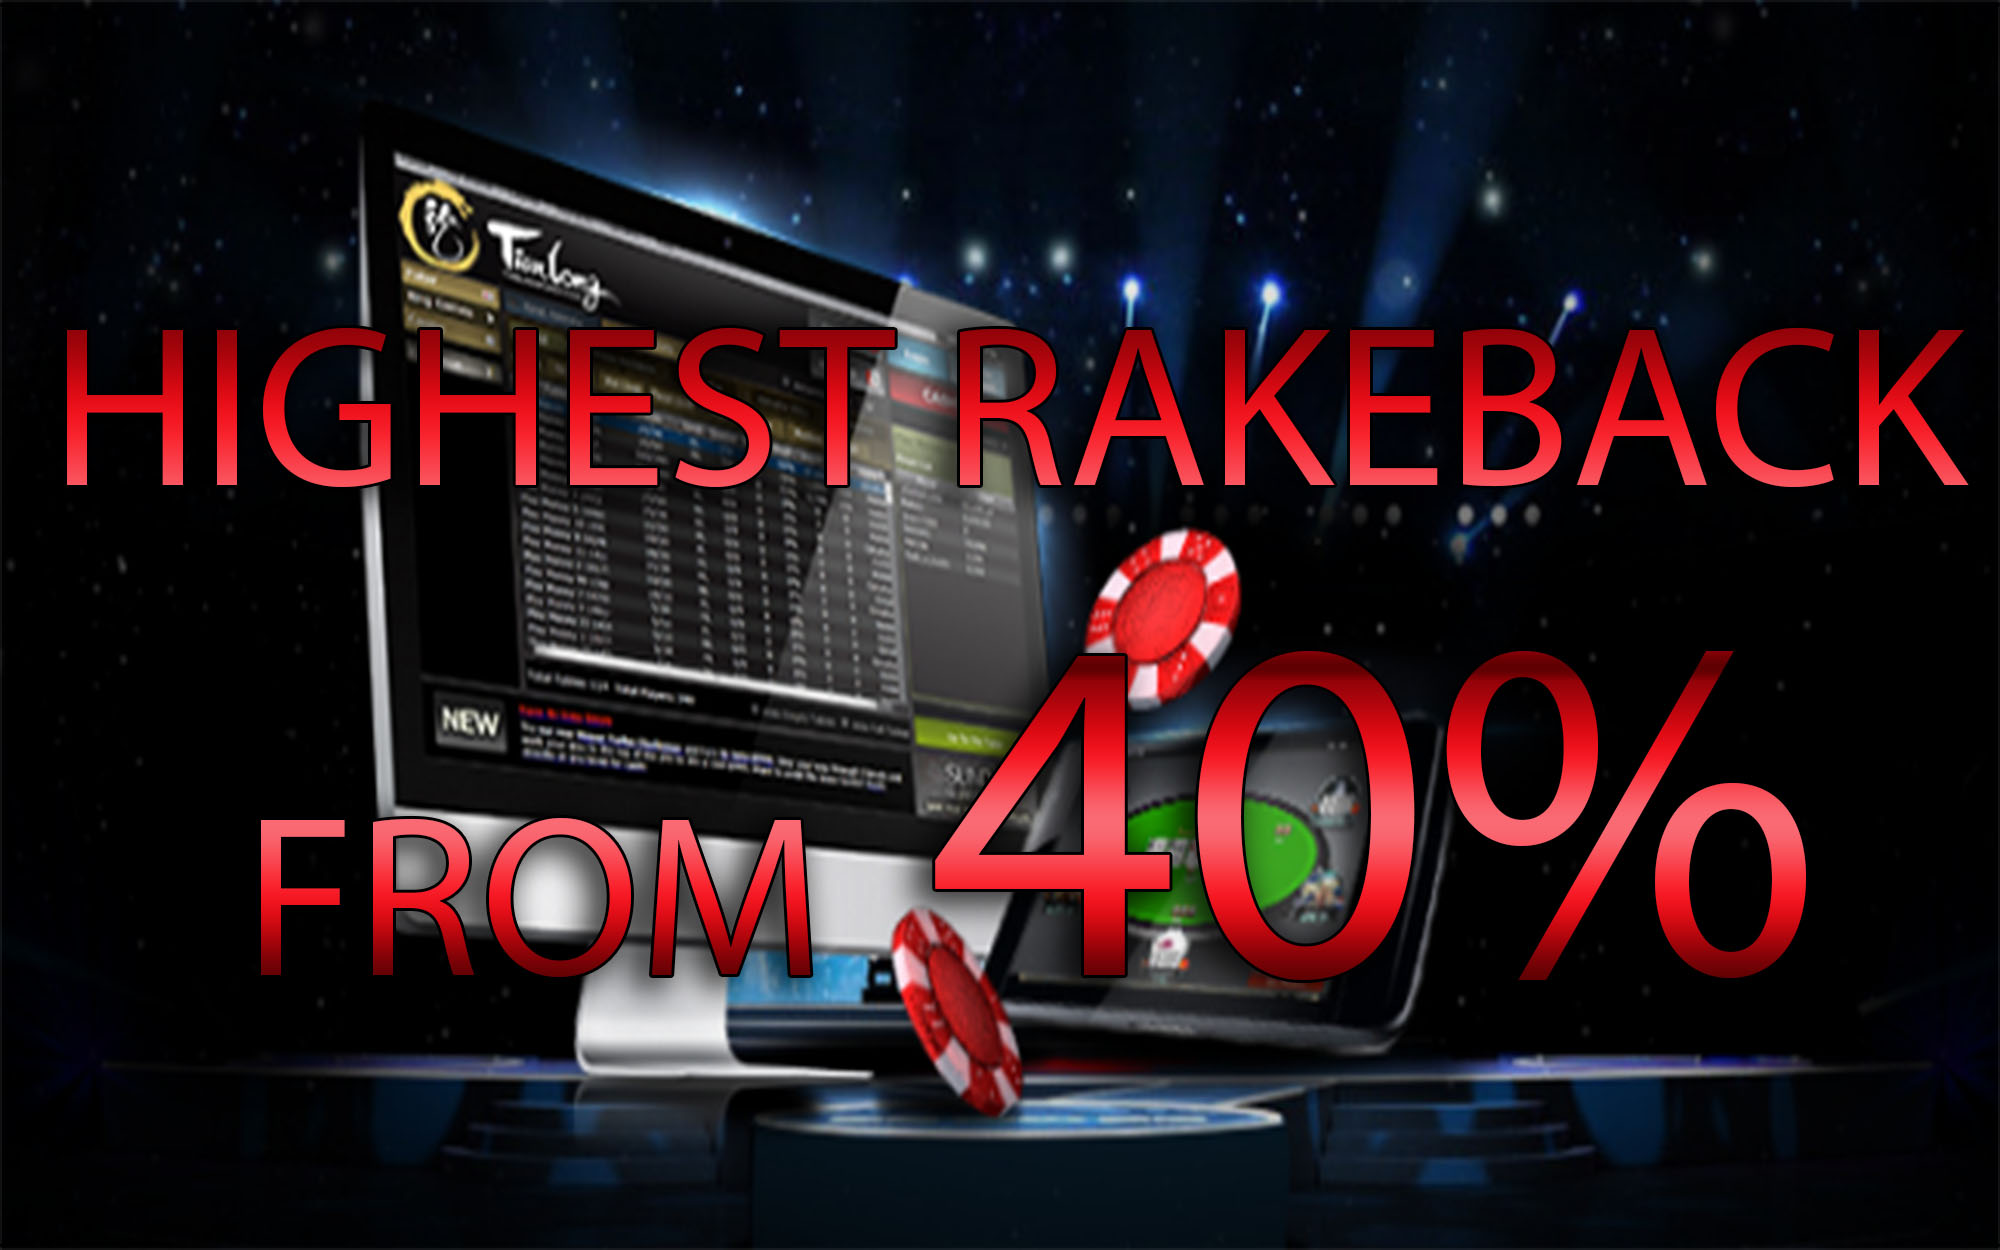 {:ru}(21.12.2016) Tianlong poker - высокий рейкбек 40%+!{:}{:en}(21.12.2016) Tianlong poker - the highest rakeback on the internet!{:}